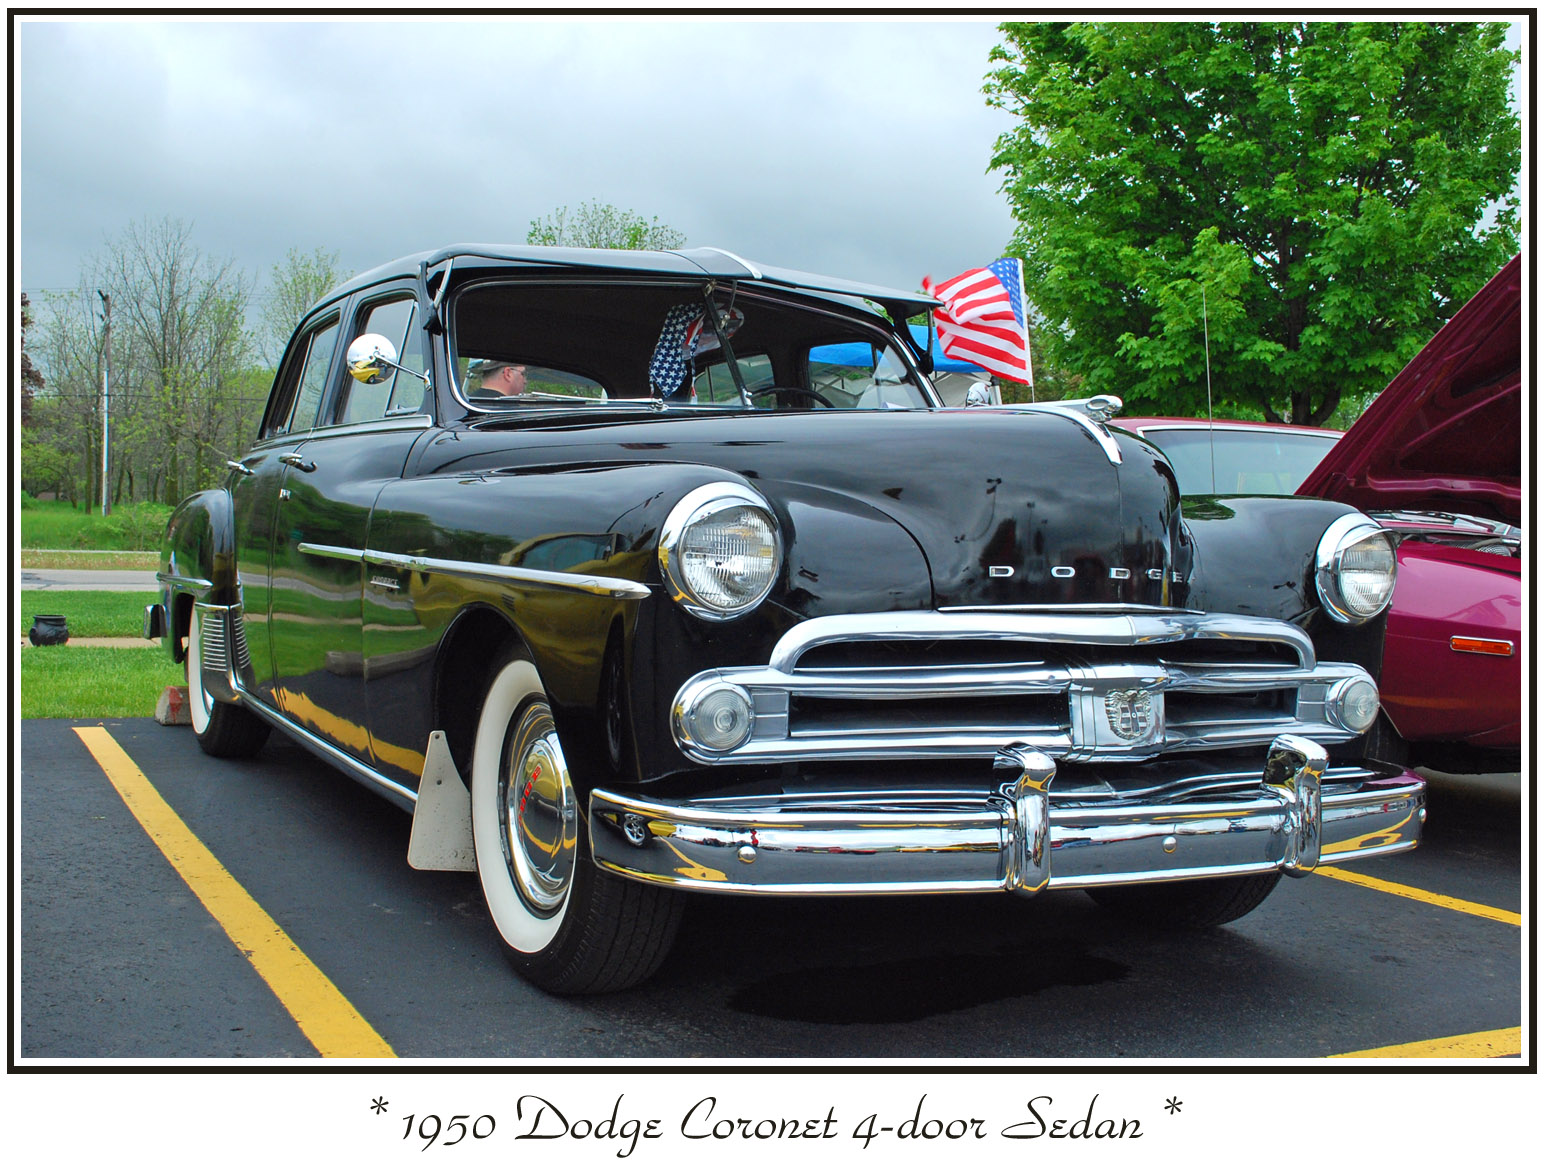 1950 Dodge Coronet | Flickr - Photo Sharing!